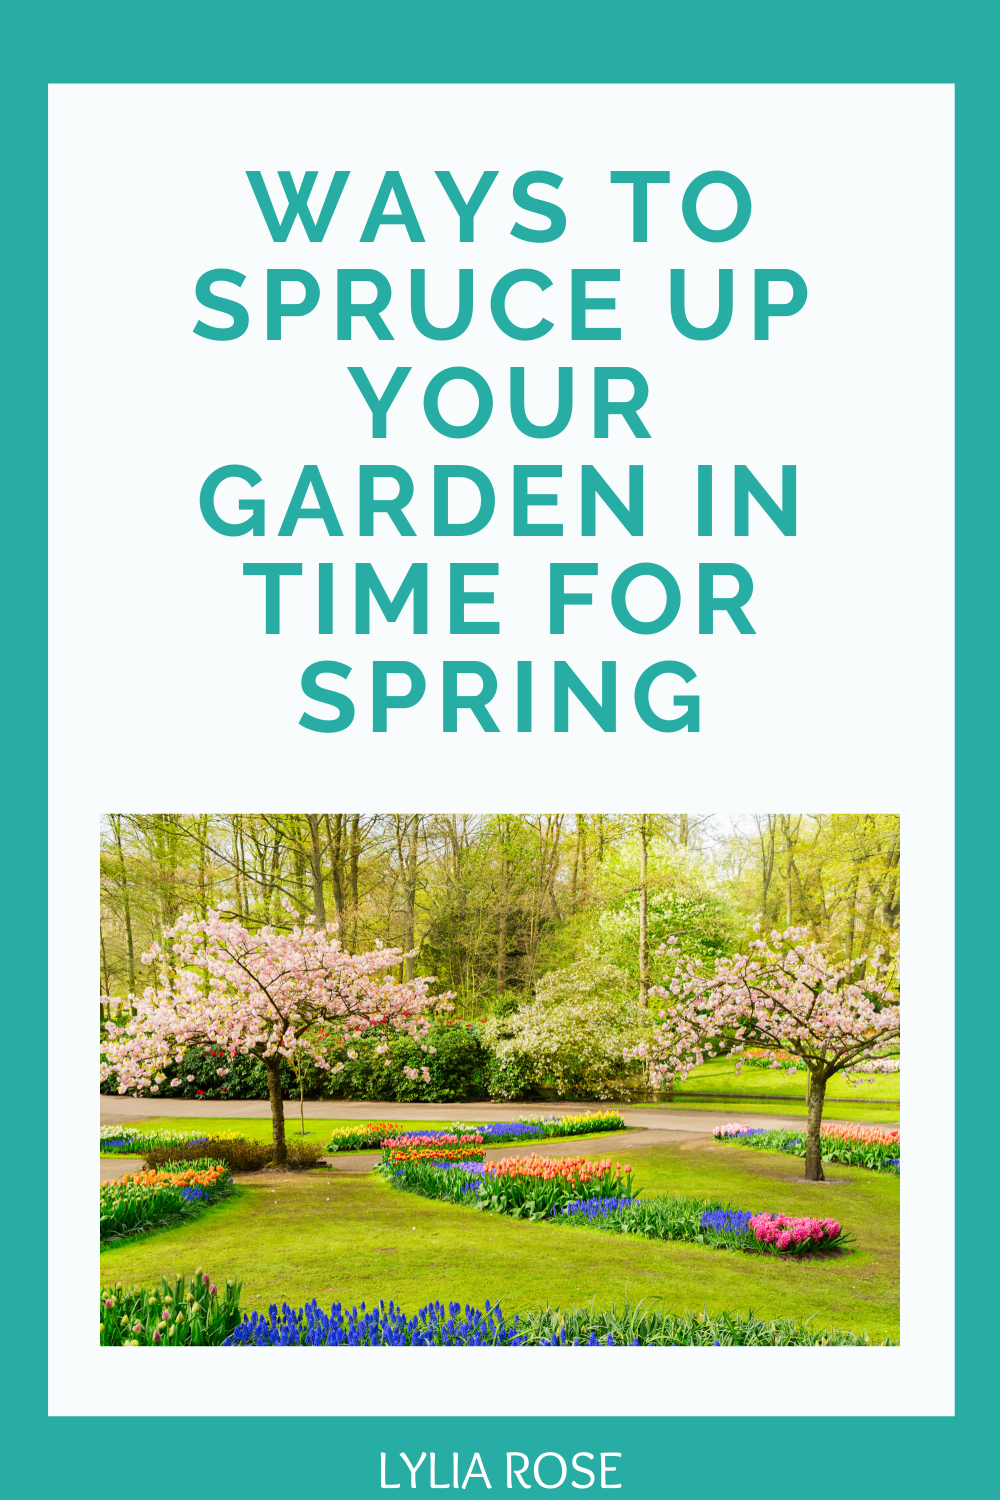 Ways to spruce up your garden in time for spring